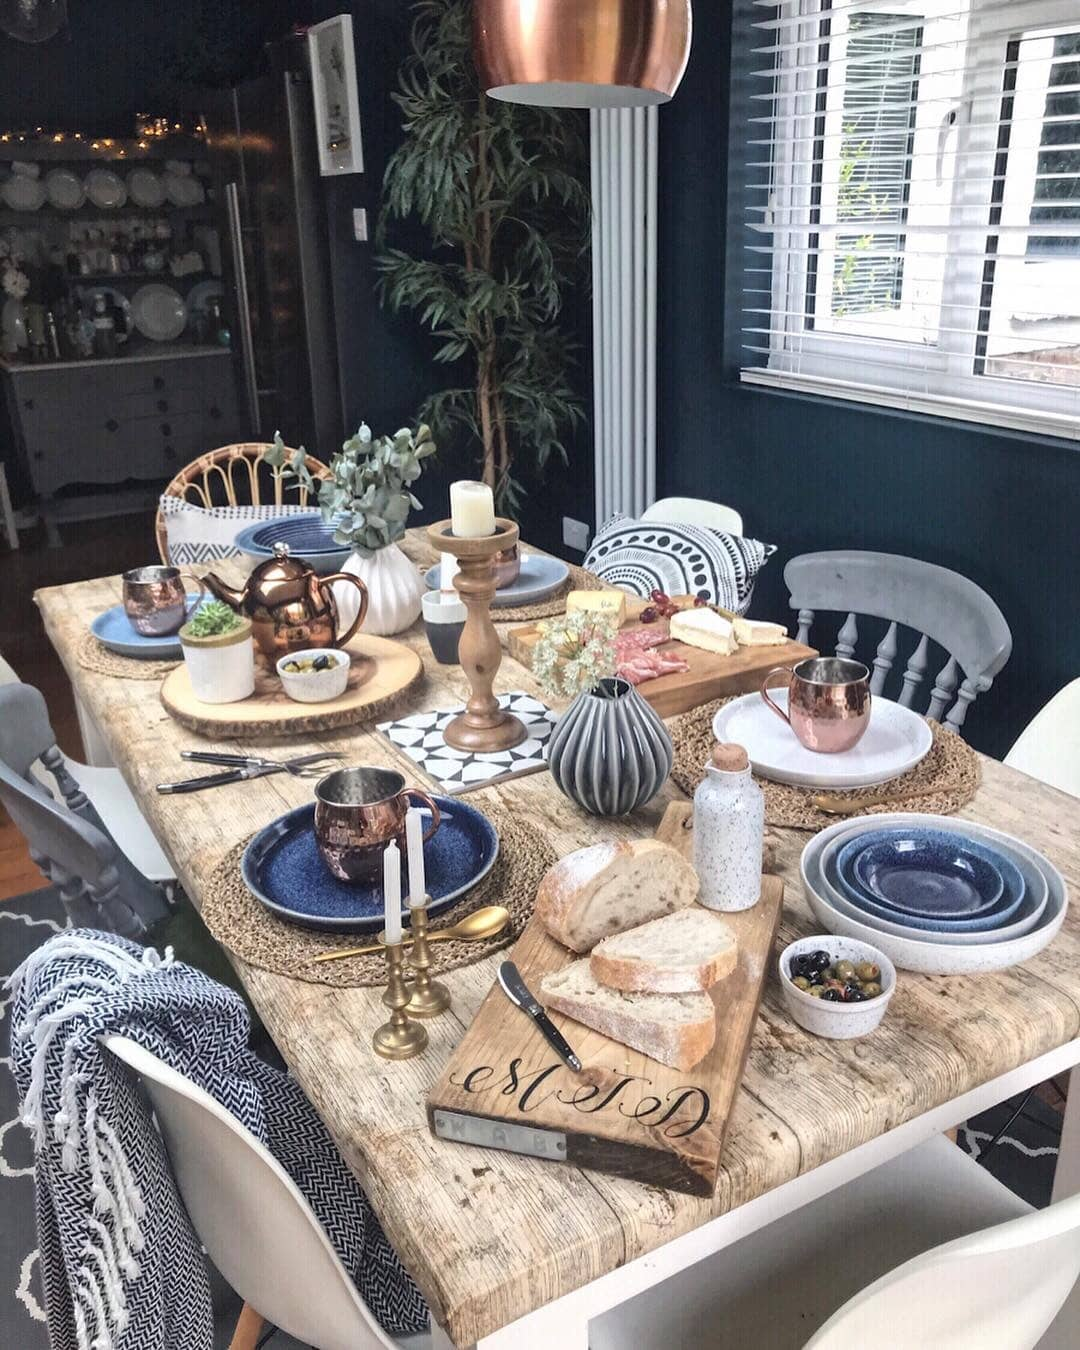 My first real attempt at table styling. I'll admit, I've got a long way to go!! Instagram:  @melaniejadedesign